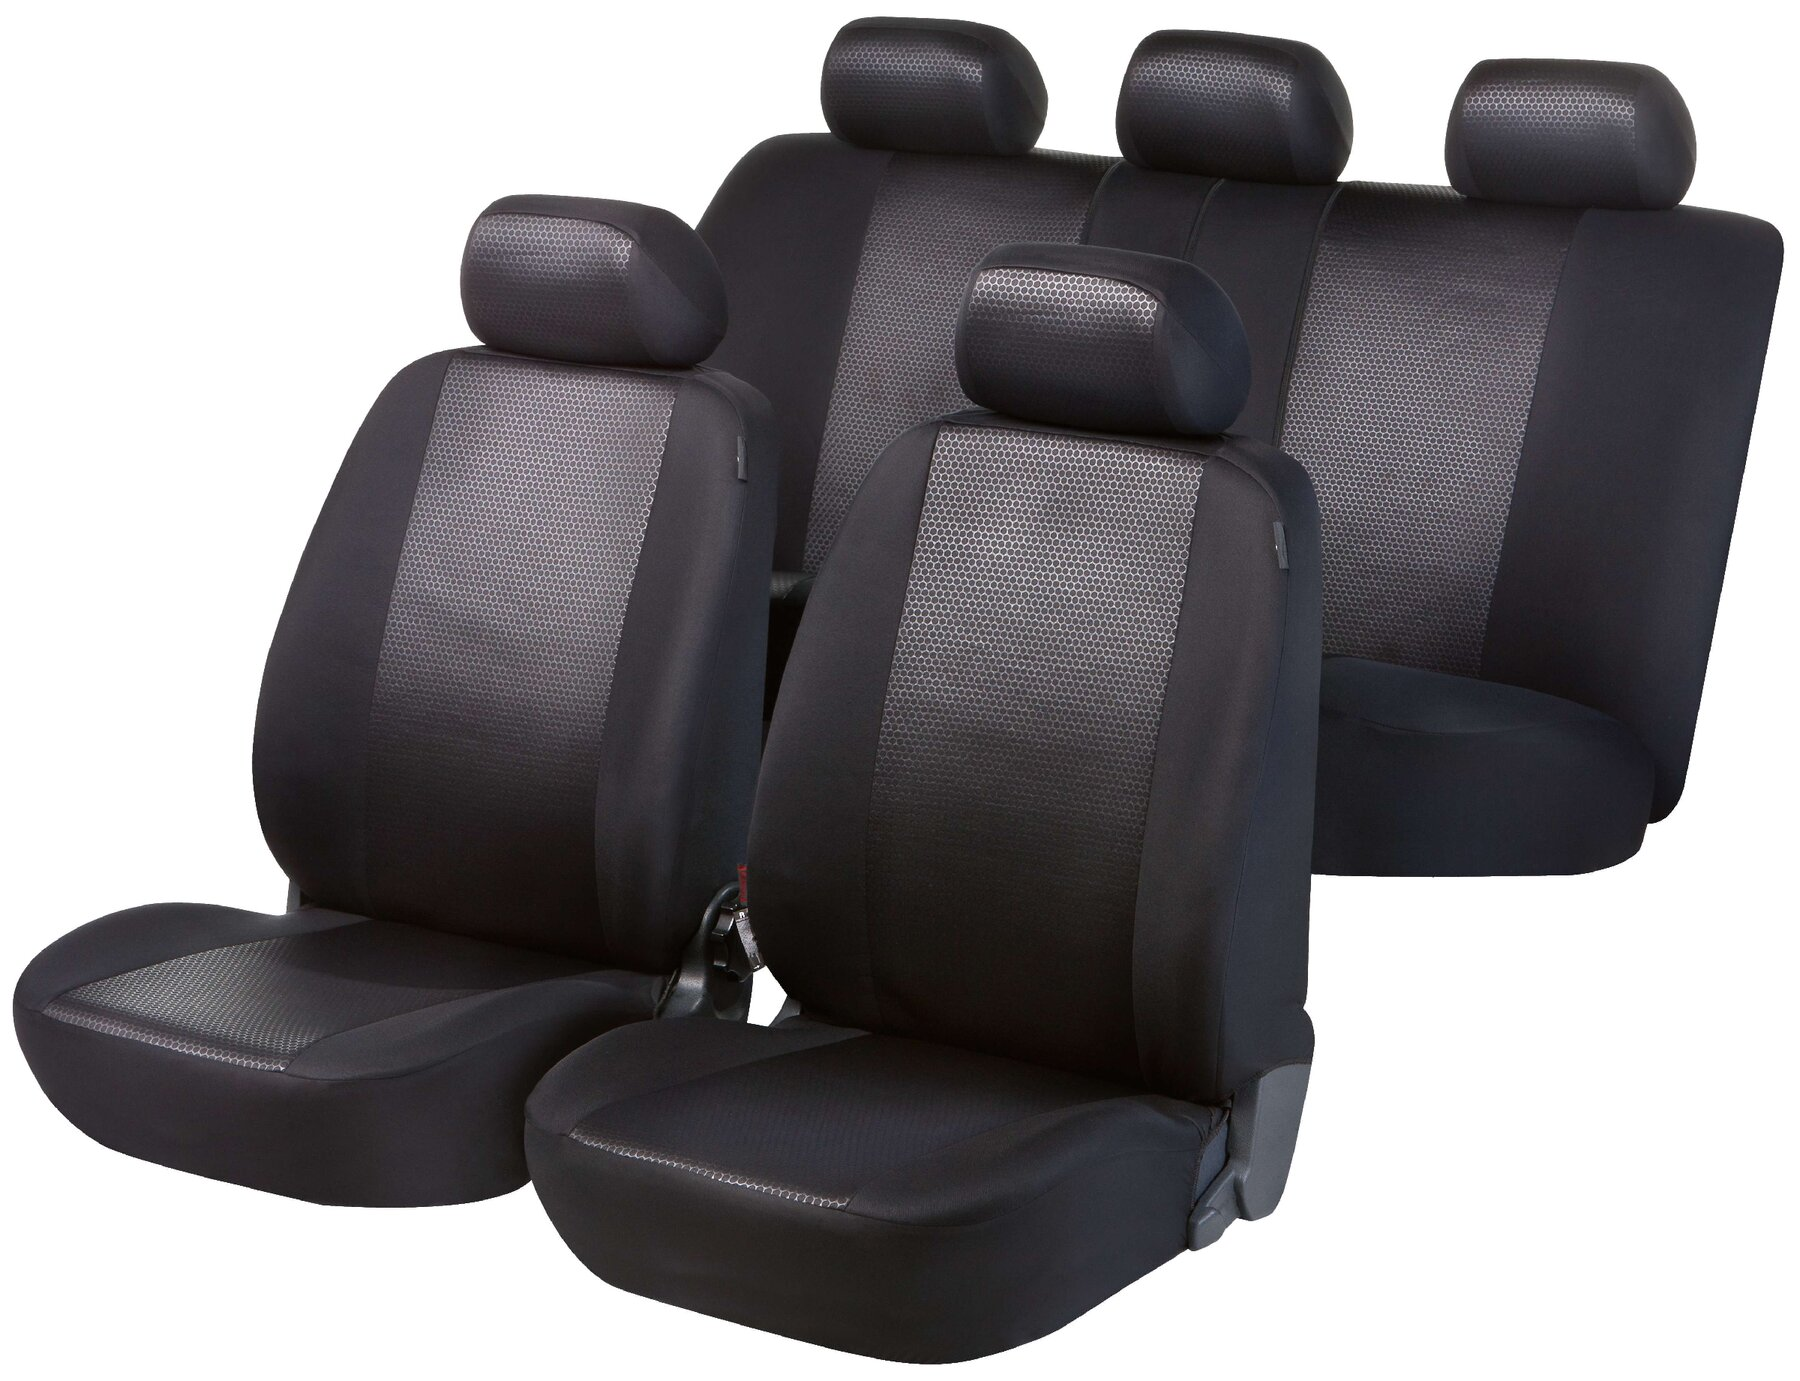 Walser Shiny Premium Airbag Tested Car Seat Covers Front Rear Protectors Black